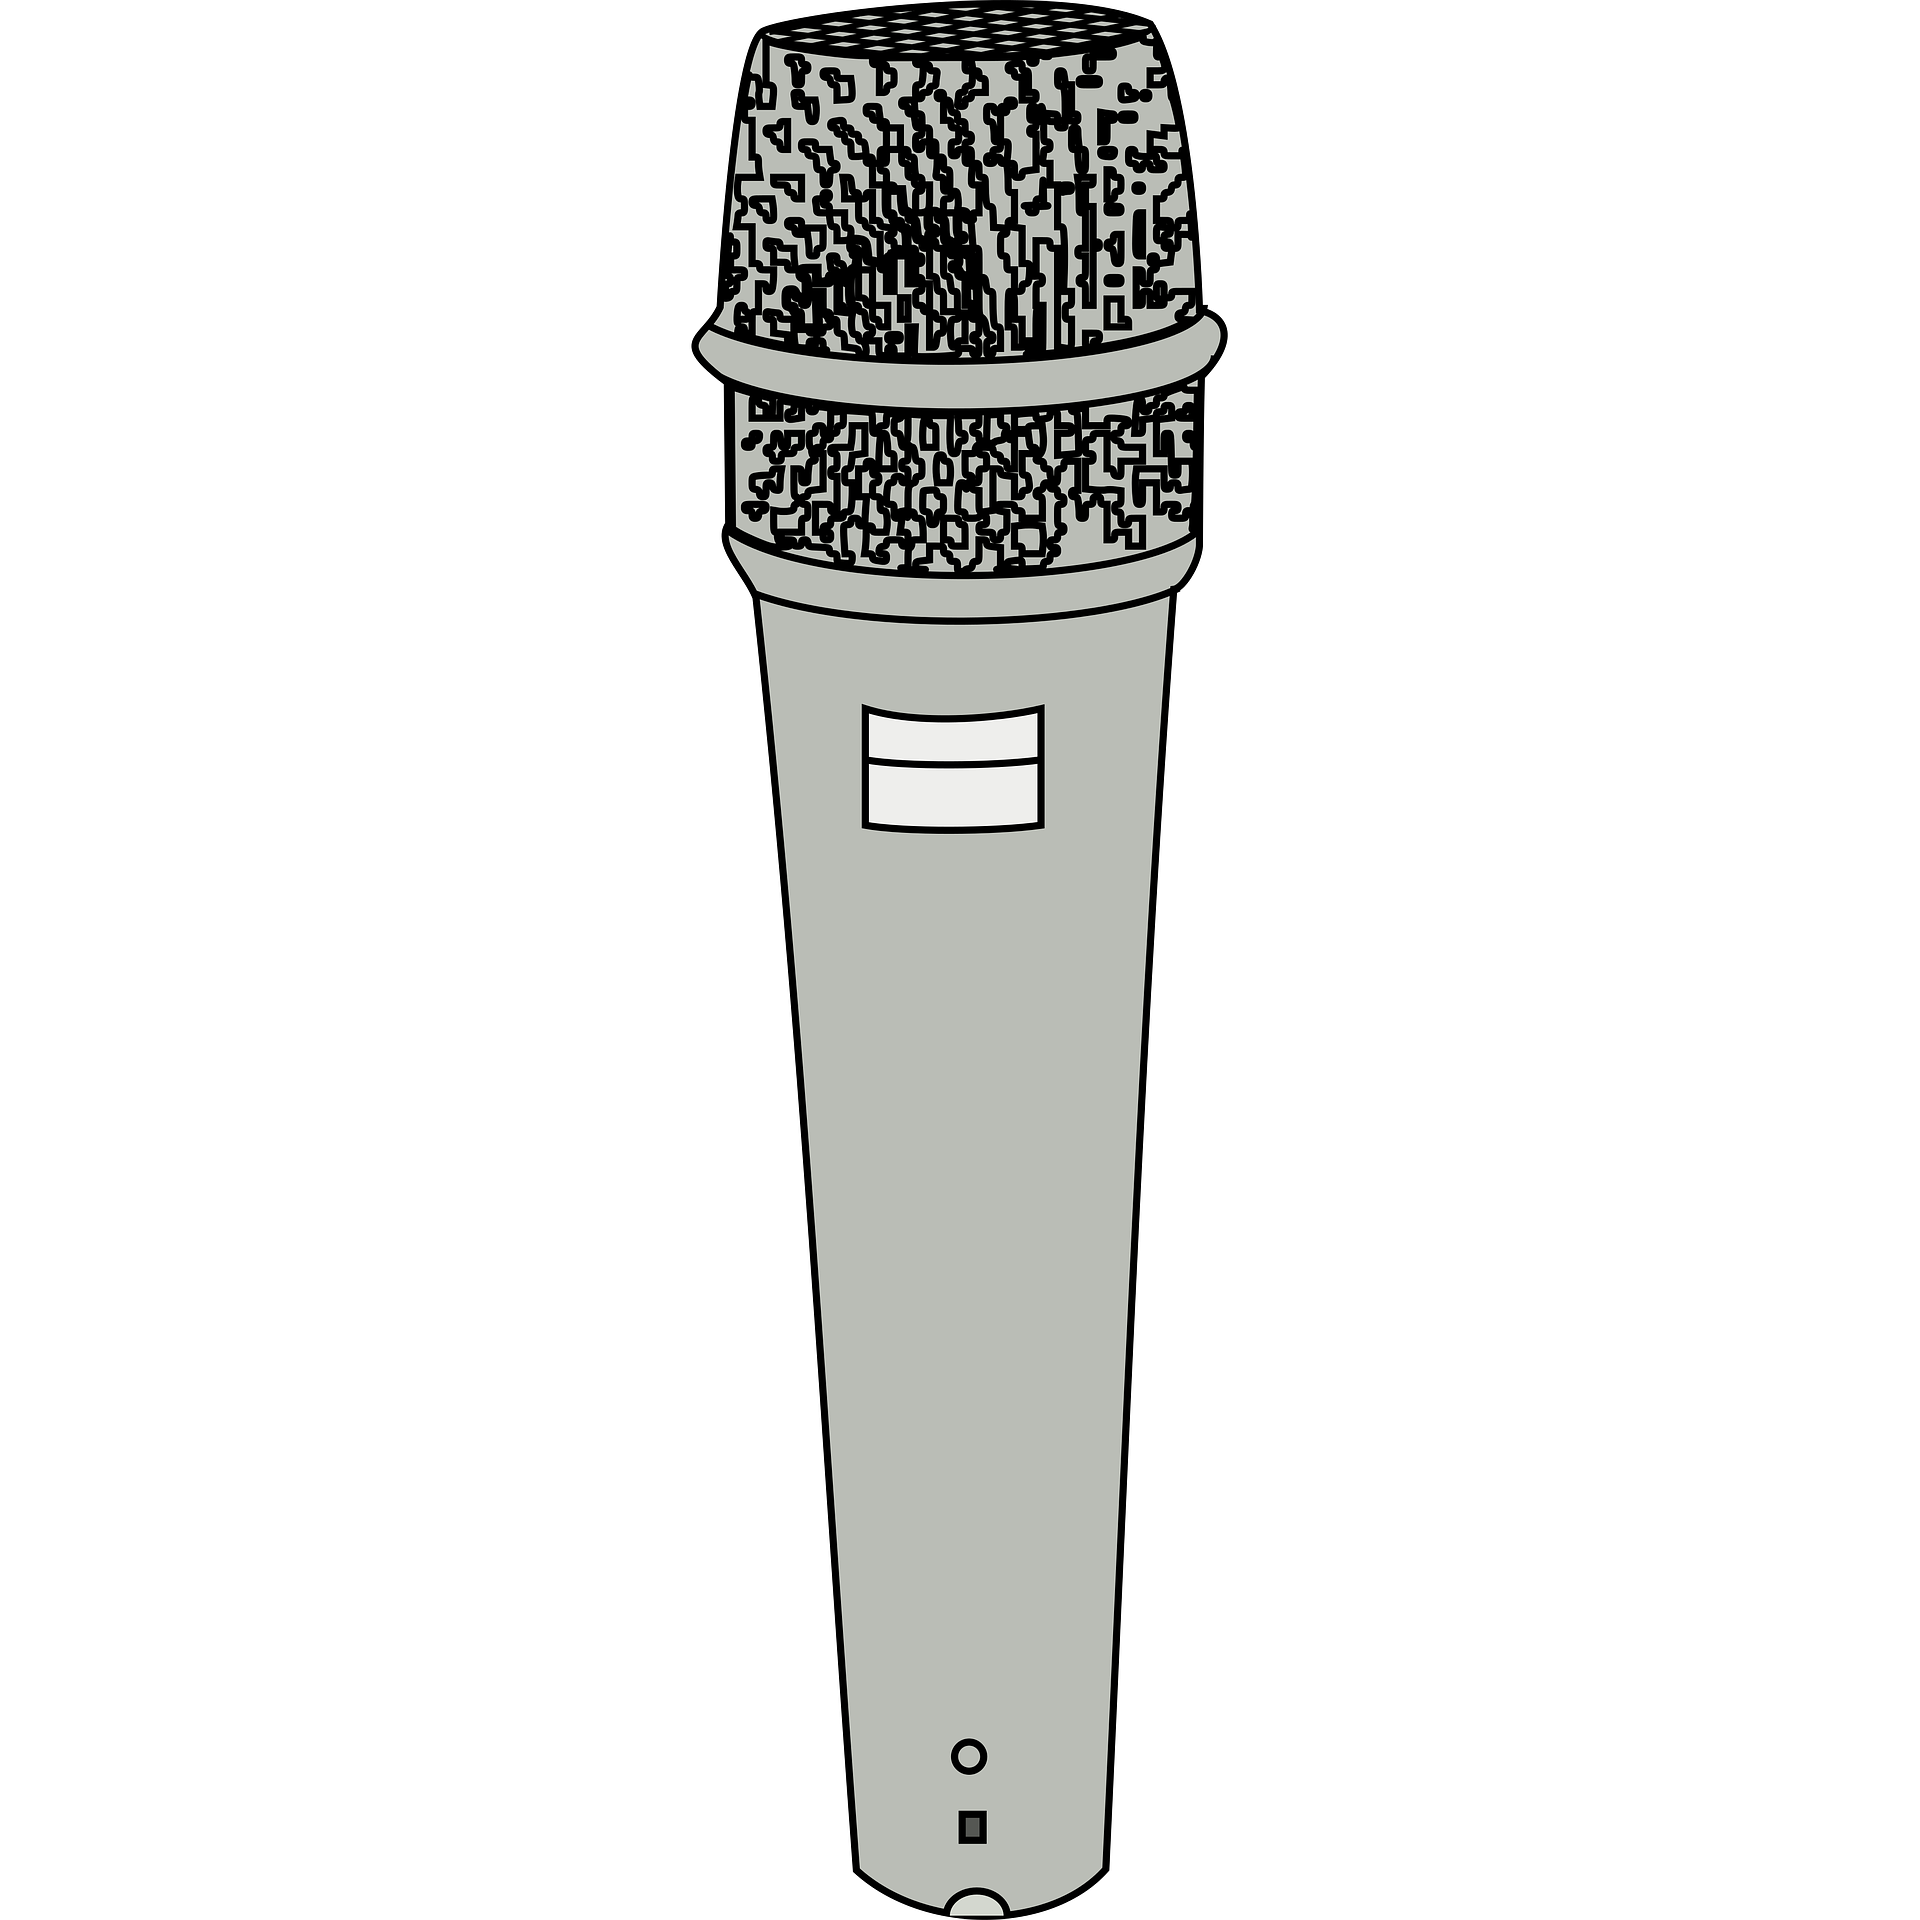 Microphone clipart colored. Music illustration london mums